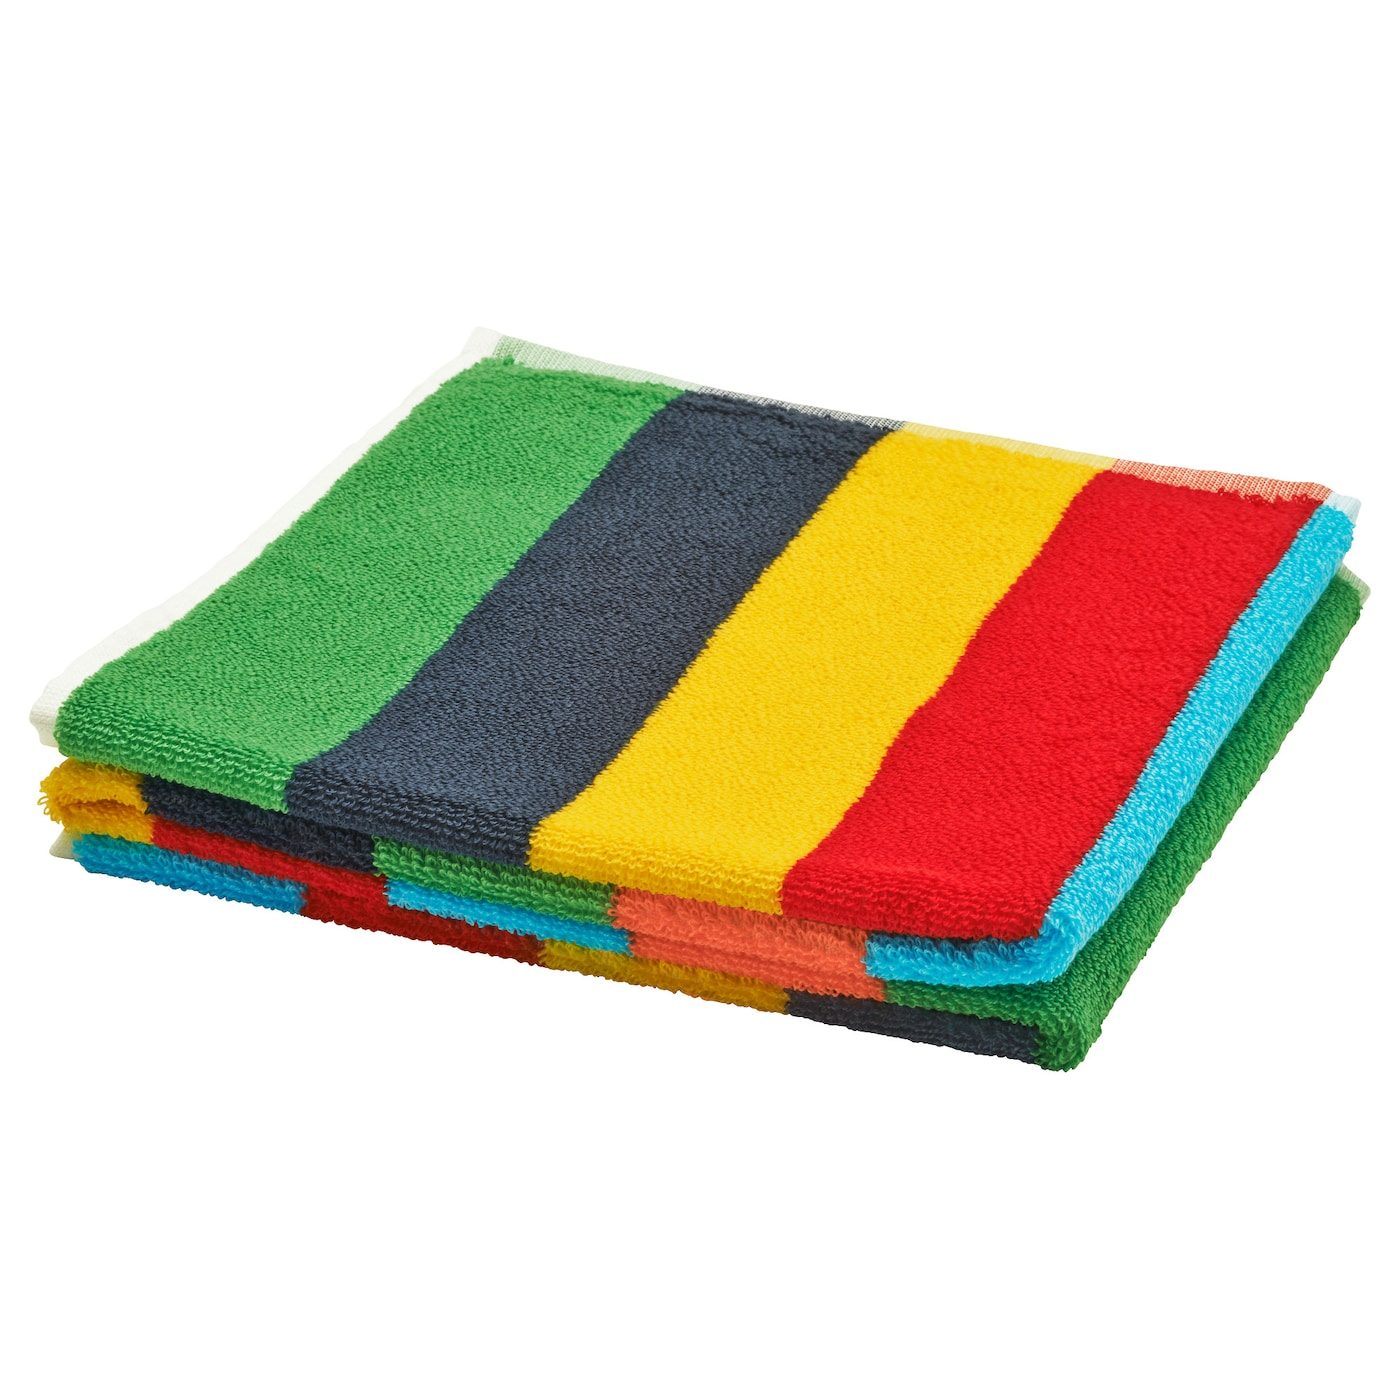 IKEA BOKVIK hand towel The long, fine fibres of combed cotton create a soft and durable towel.